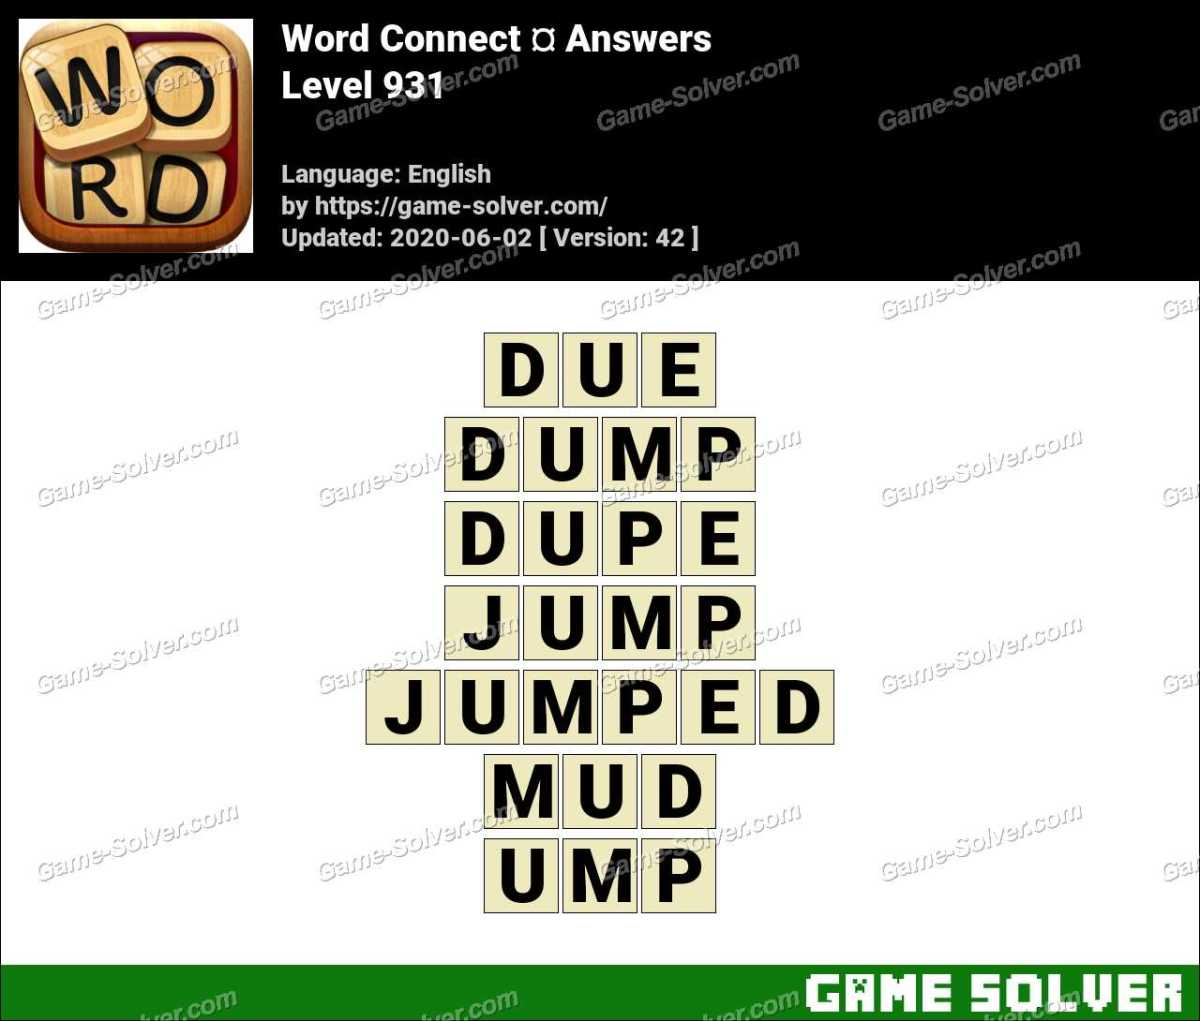 Word Connect Level 931 Answers